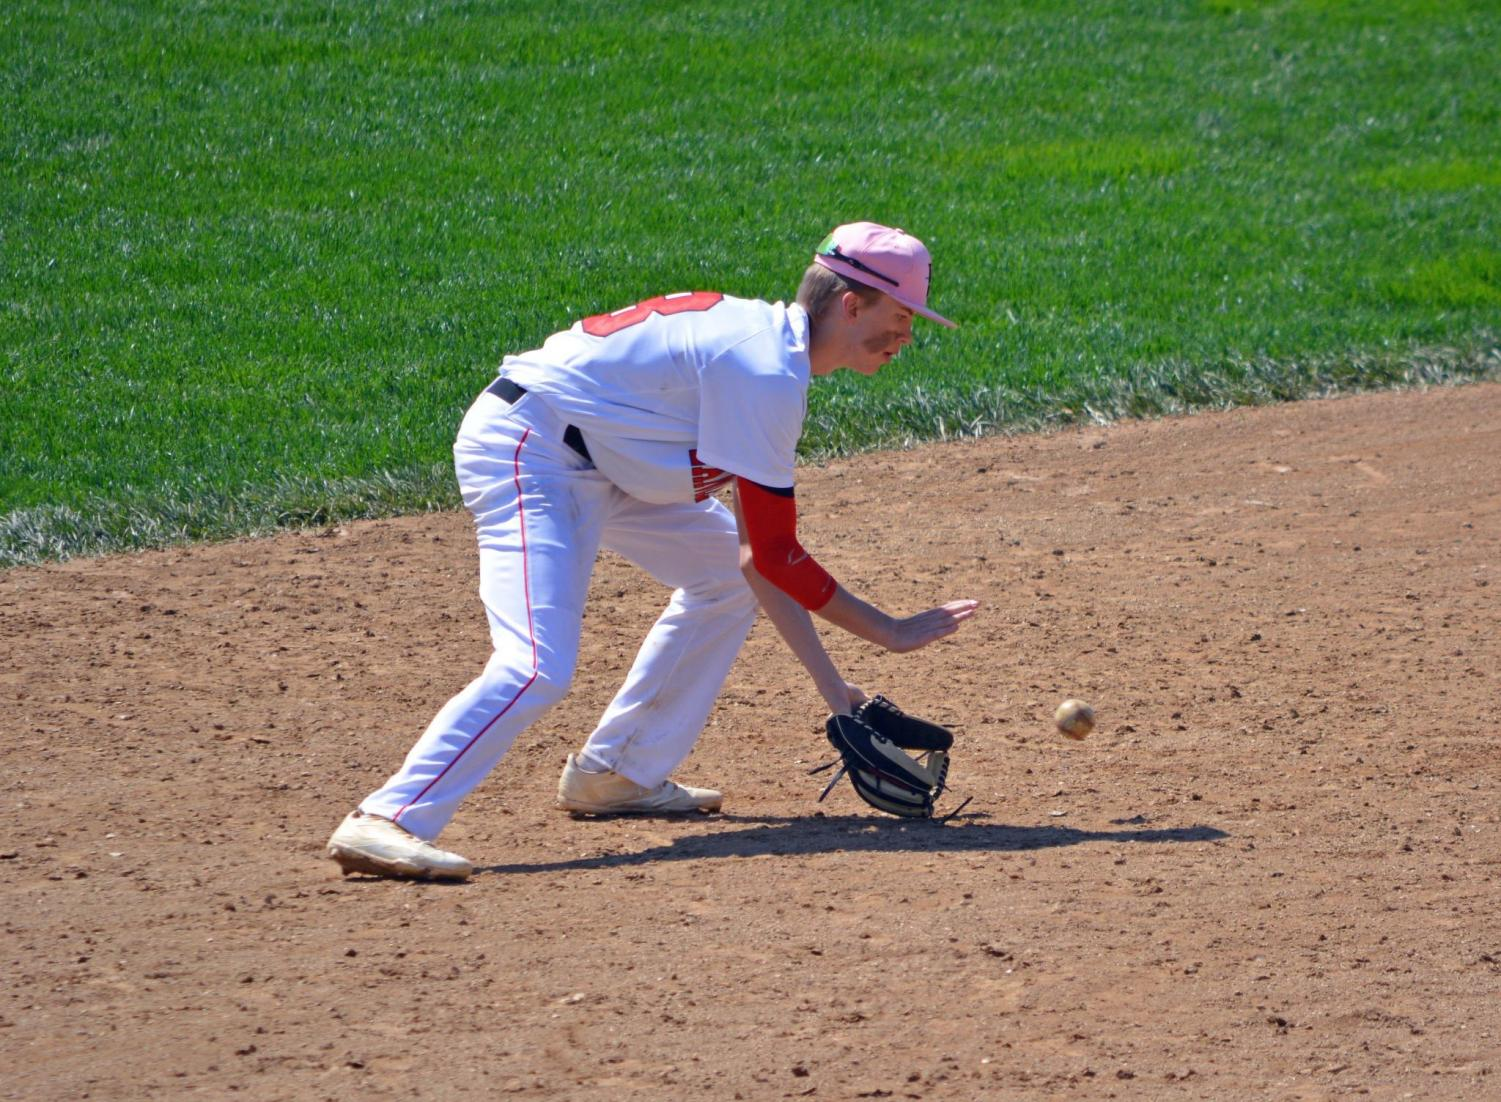 Schwartzbeck reaches for the ball.